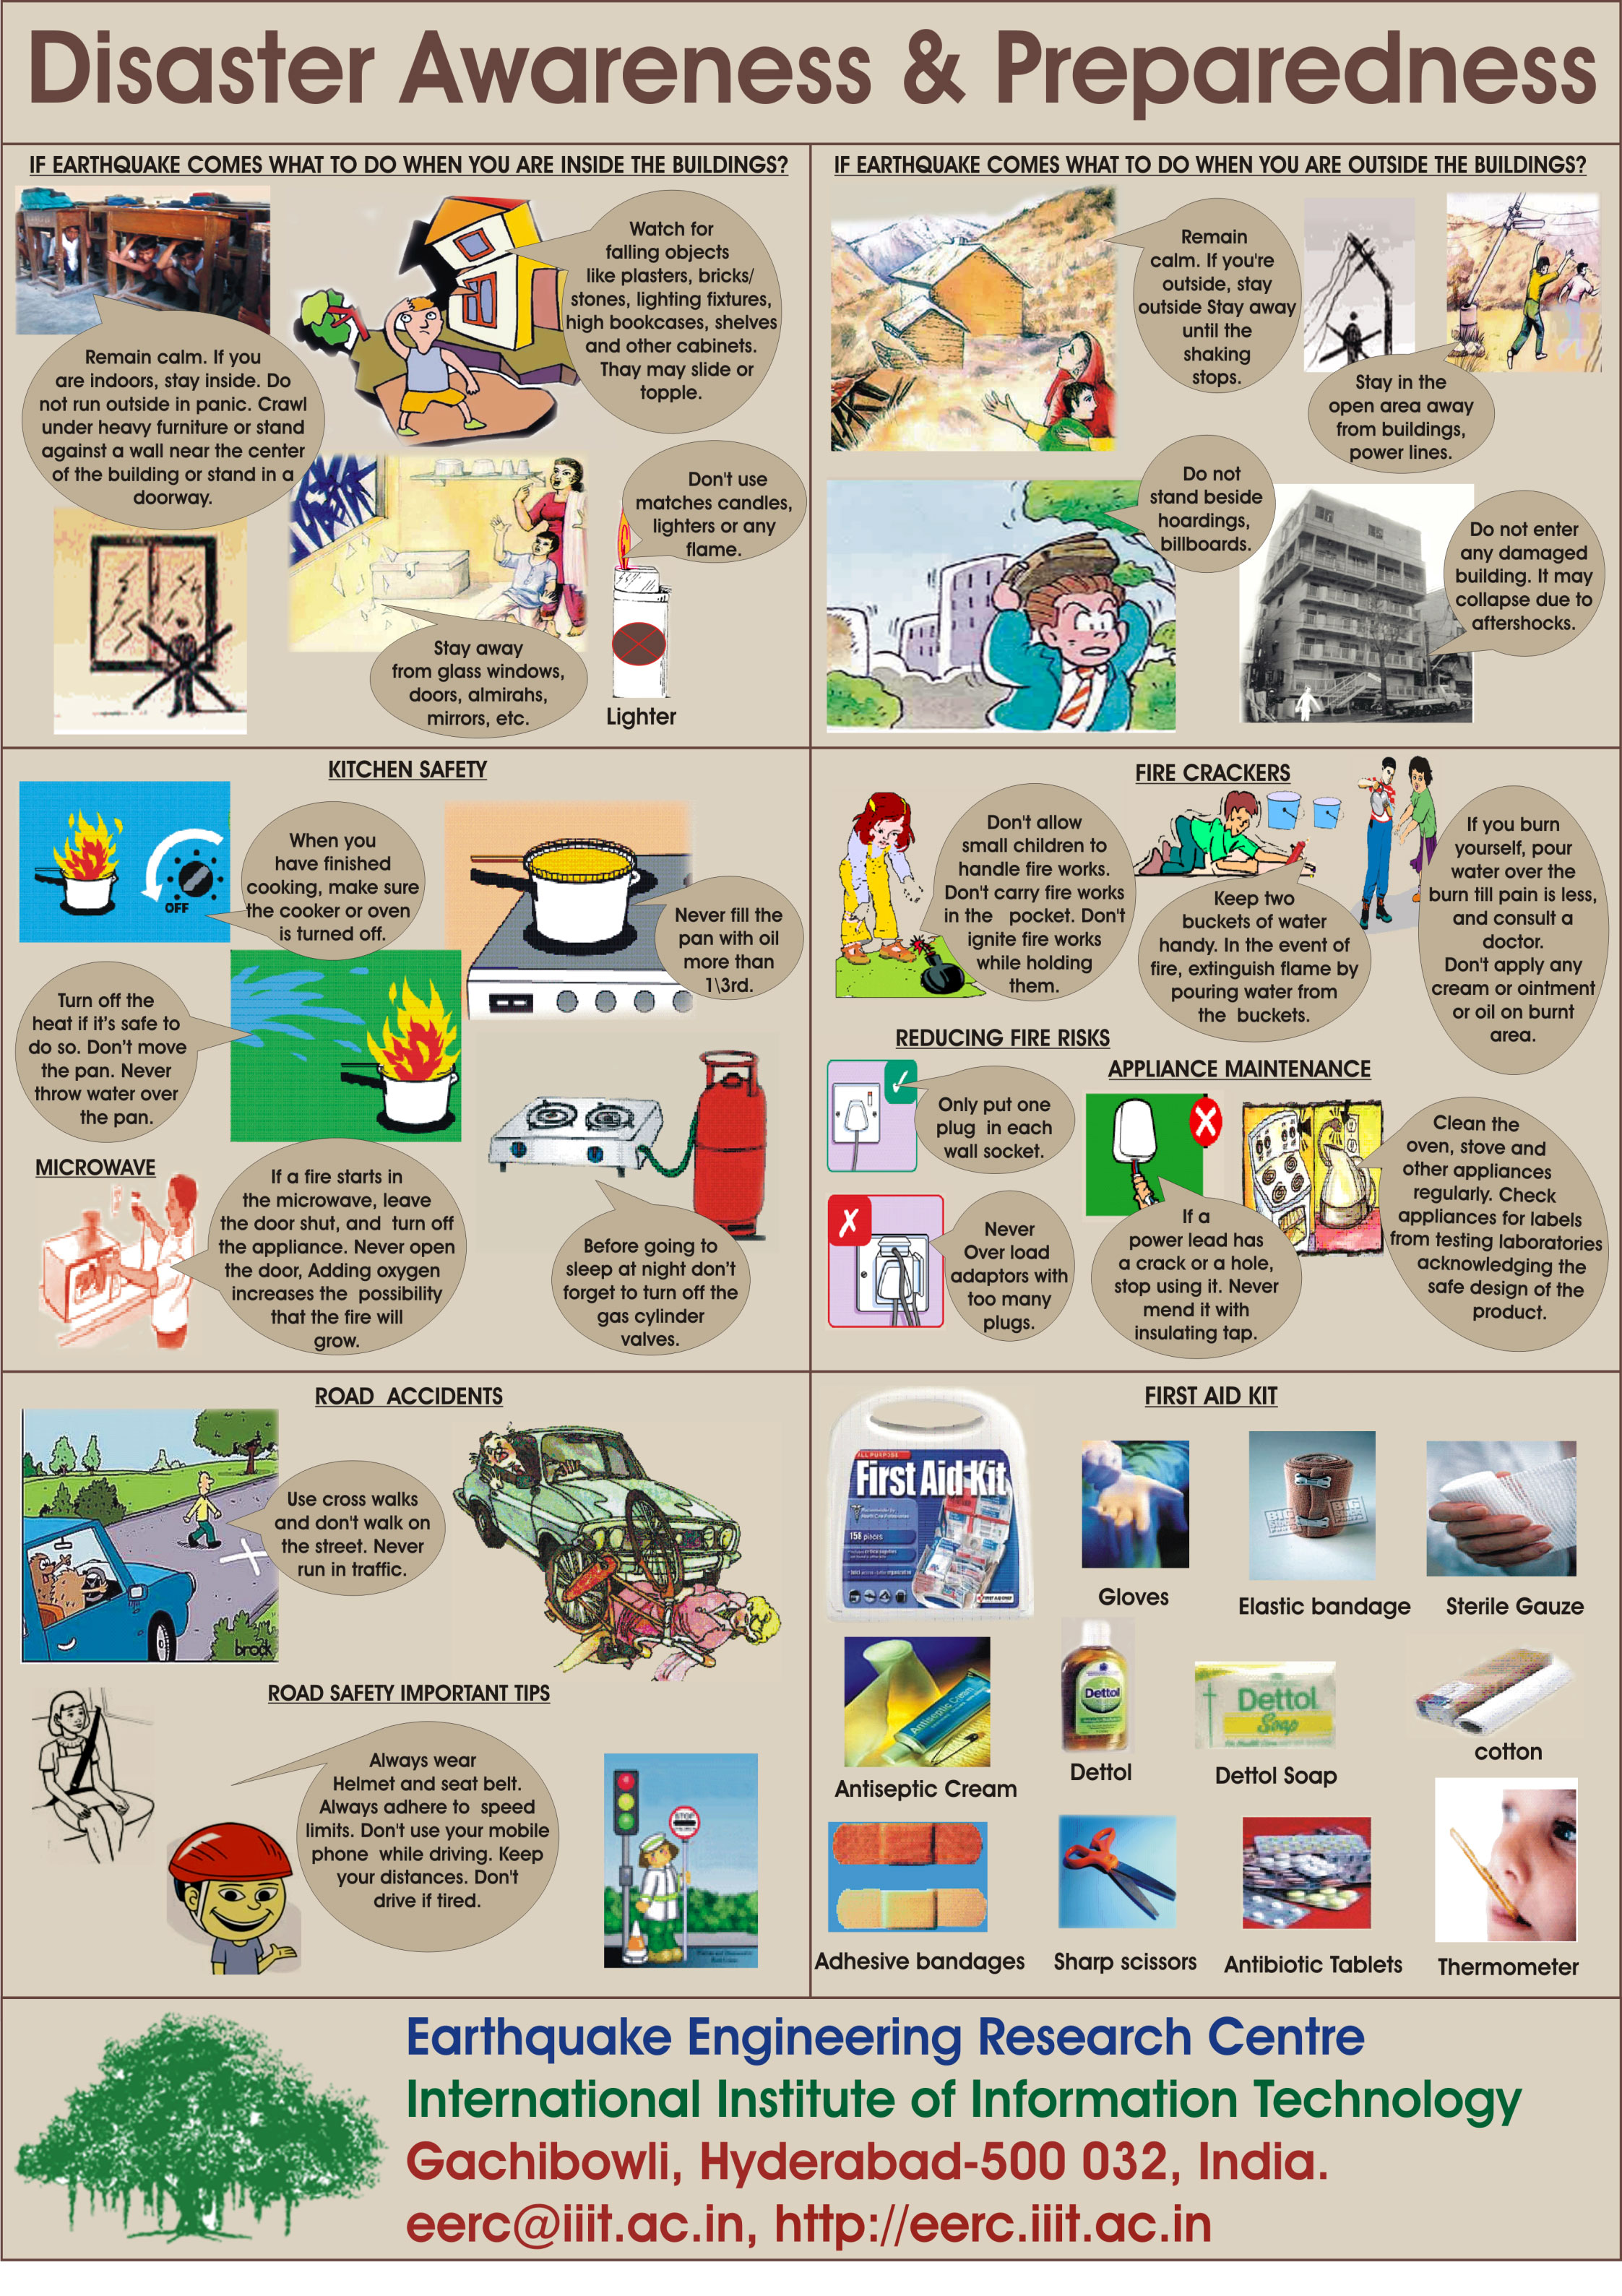 Disaster clipart earthquake safety Resistant Guidelines & for ·